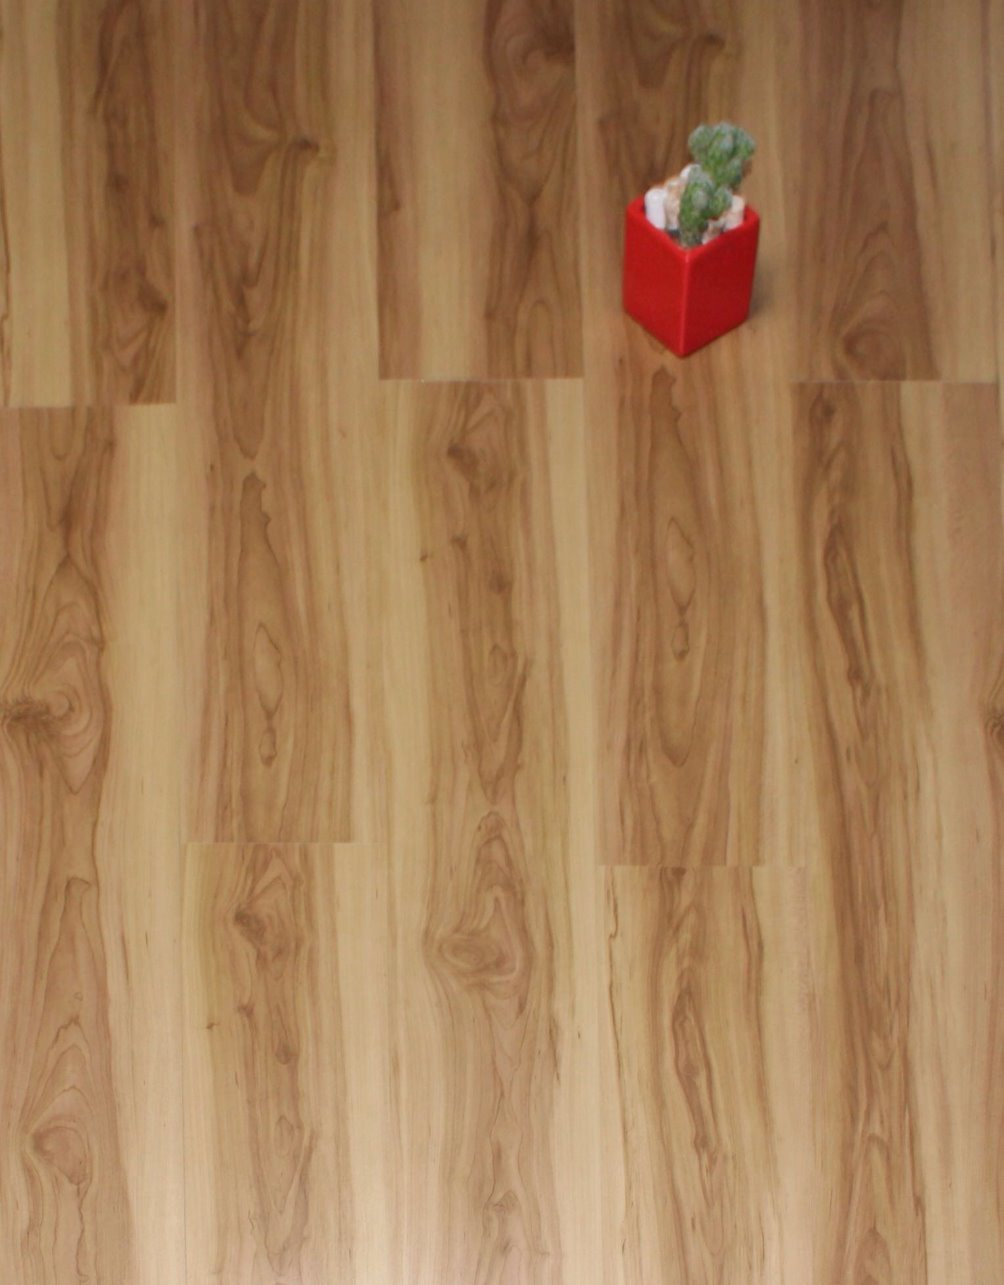 Household Wood Grain Vinyl Floor Tile